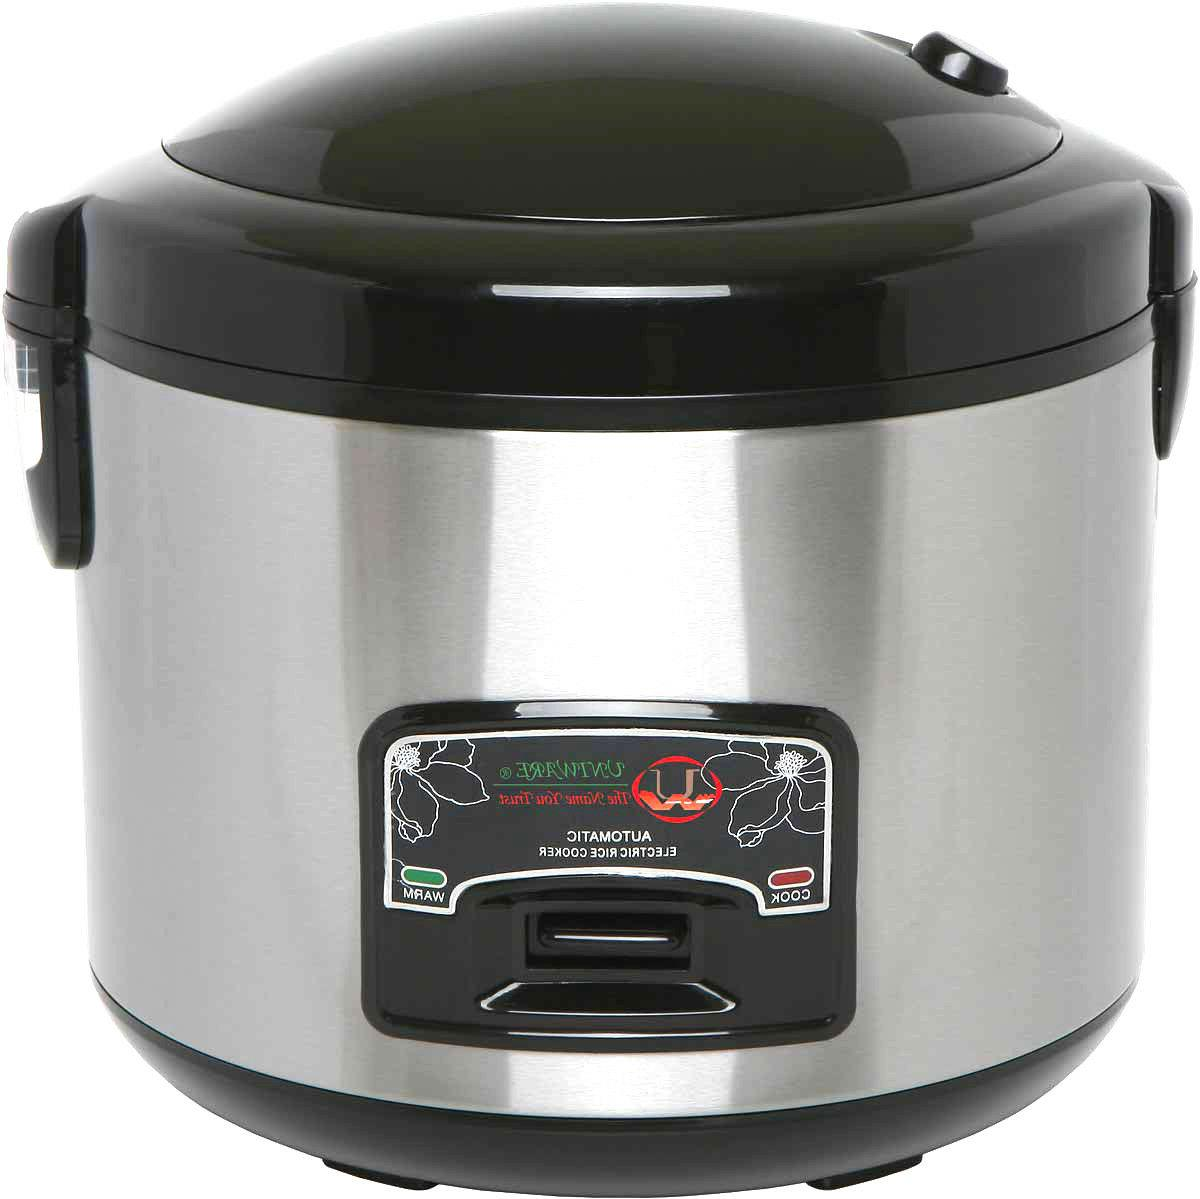 8008 5 high quality electric deluxe rice